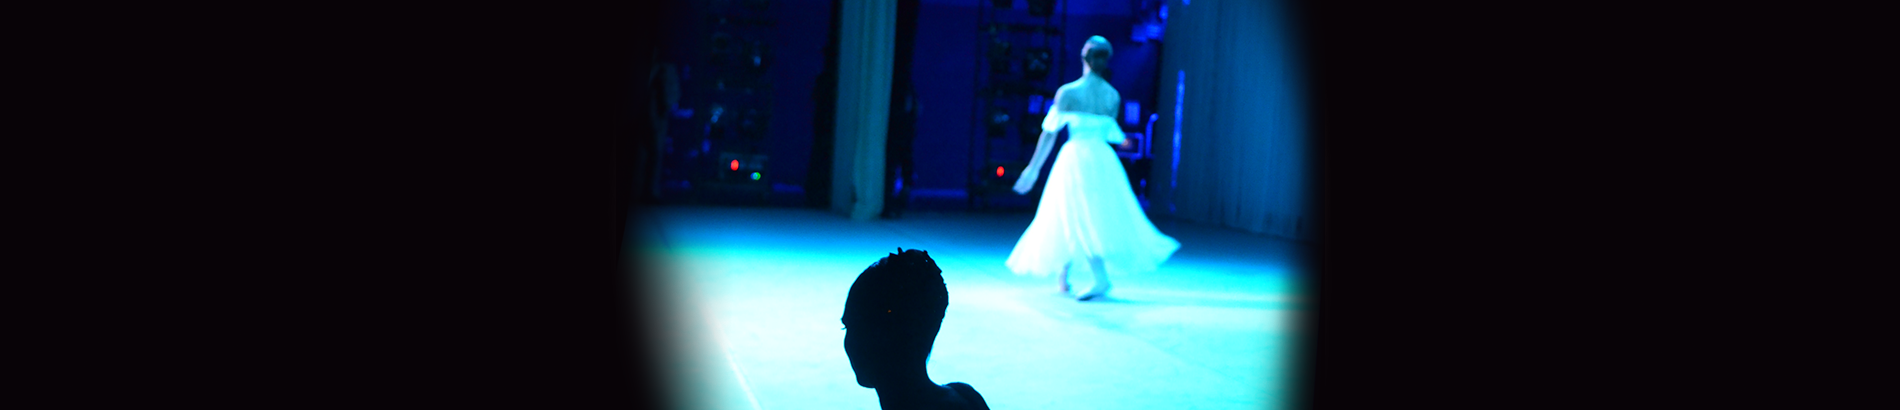 XIII Moscow International Ballet Competition: Seniors